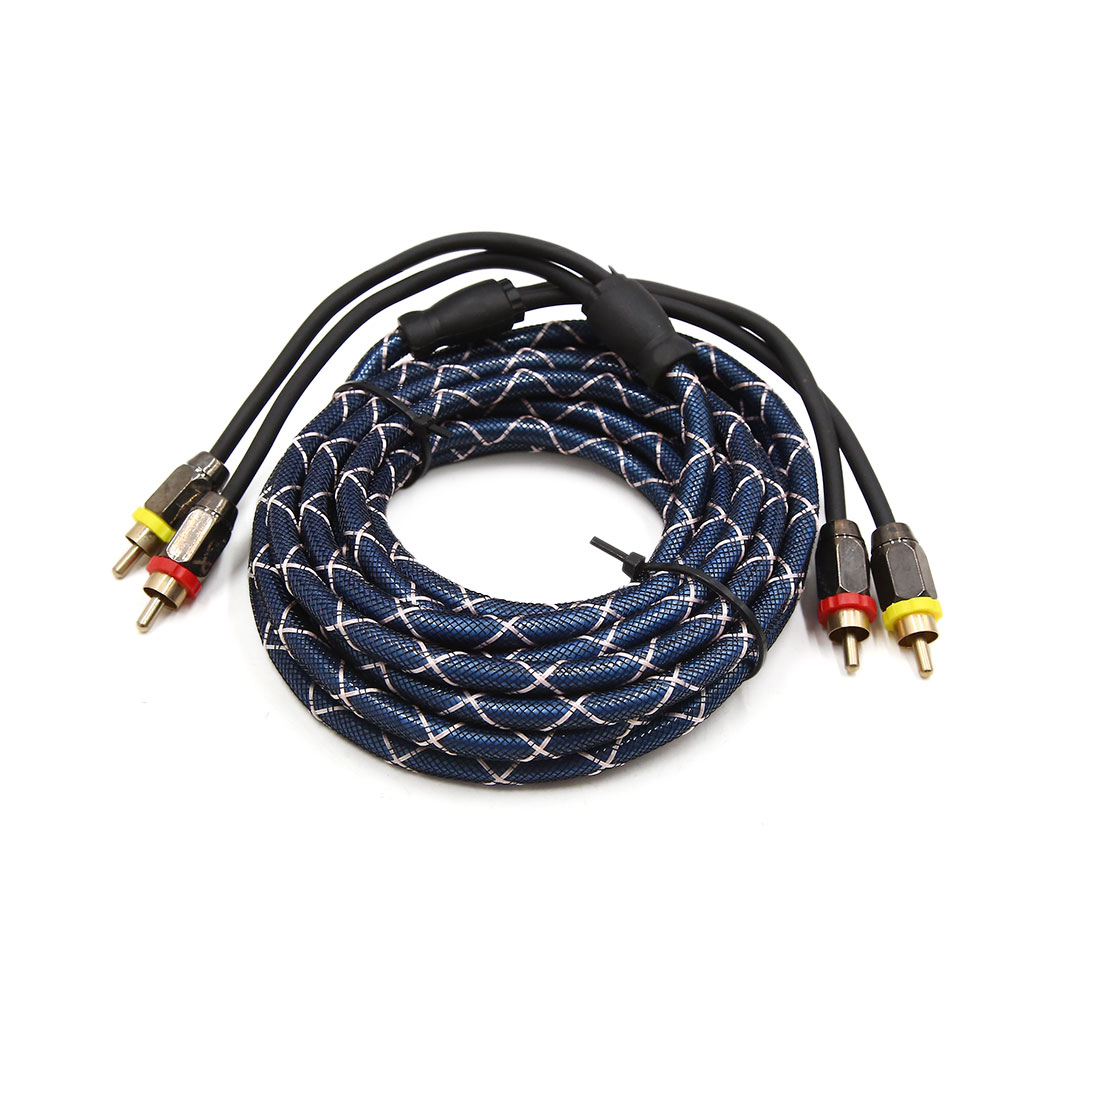 4.5-5m Faux Snakeskin Connector Adaptor Car Stereo Audio Cord Extension Cable